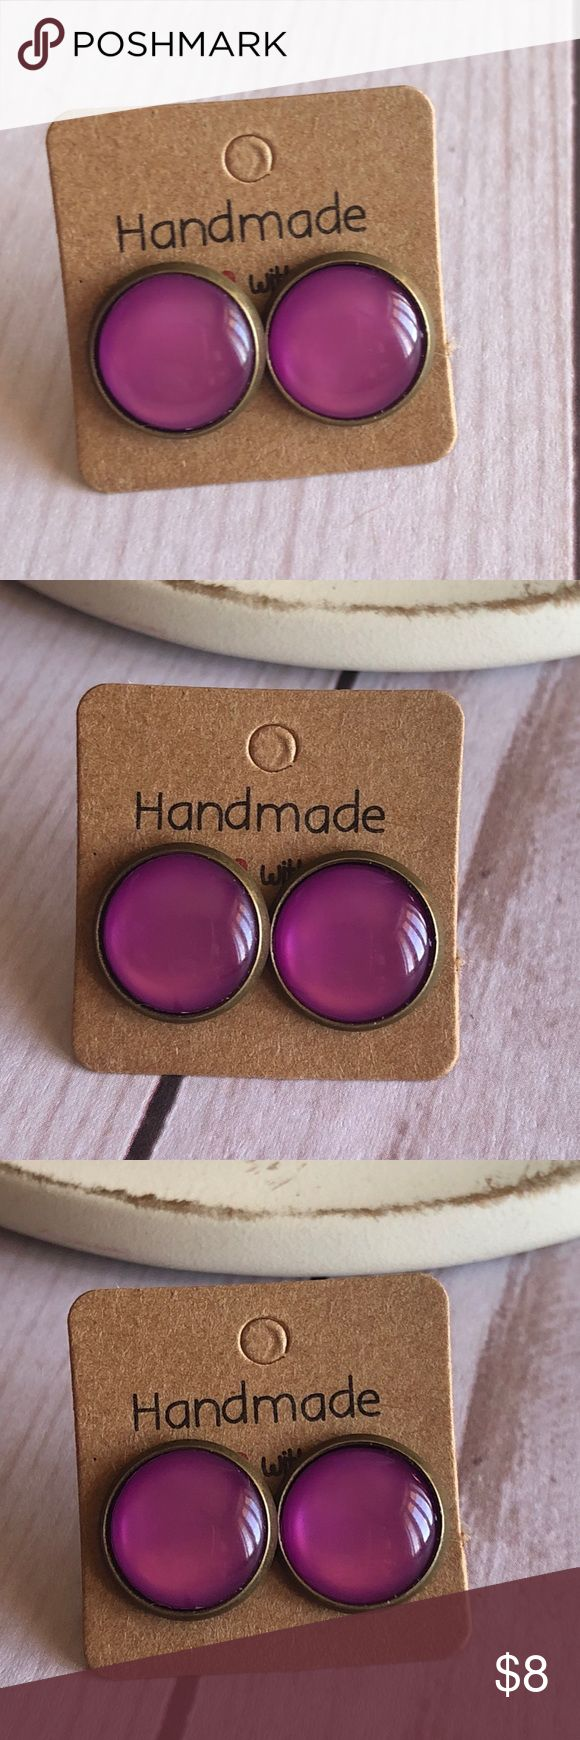 """🆕Purple Cats Eye Stone Copper Stud Earrings! New, Handmade by Me! Beautiful Purple Cat's Eye Stone in a Copper Post Back Style; Approx. 12mm or 1/2"""" Size; Many Beautiful Cats Eye Stones Listed; Can make in any style Back, Please just Leave Message & Ask! 📸These are MY pic's of actual items you will receive!  ▶️1 For $8, 2 For $13, 3 For $15!◀️  ▪️3-$15 is only for items listed as such▪️ ▪️Post Back for Pierced Ears ▪️Nickel, Lead & Cadmium Free  *NO TRADES *Price is FIRM as Listed!  *Sales…"""